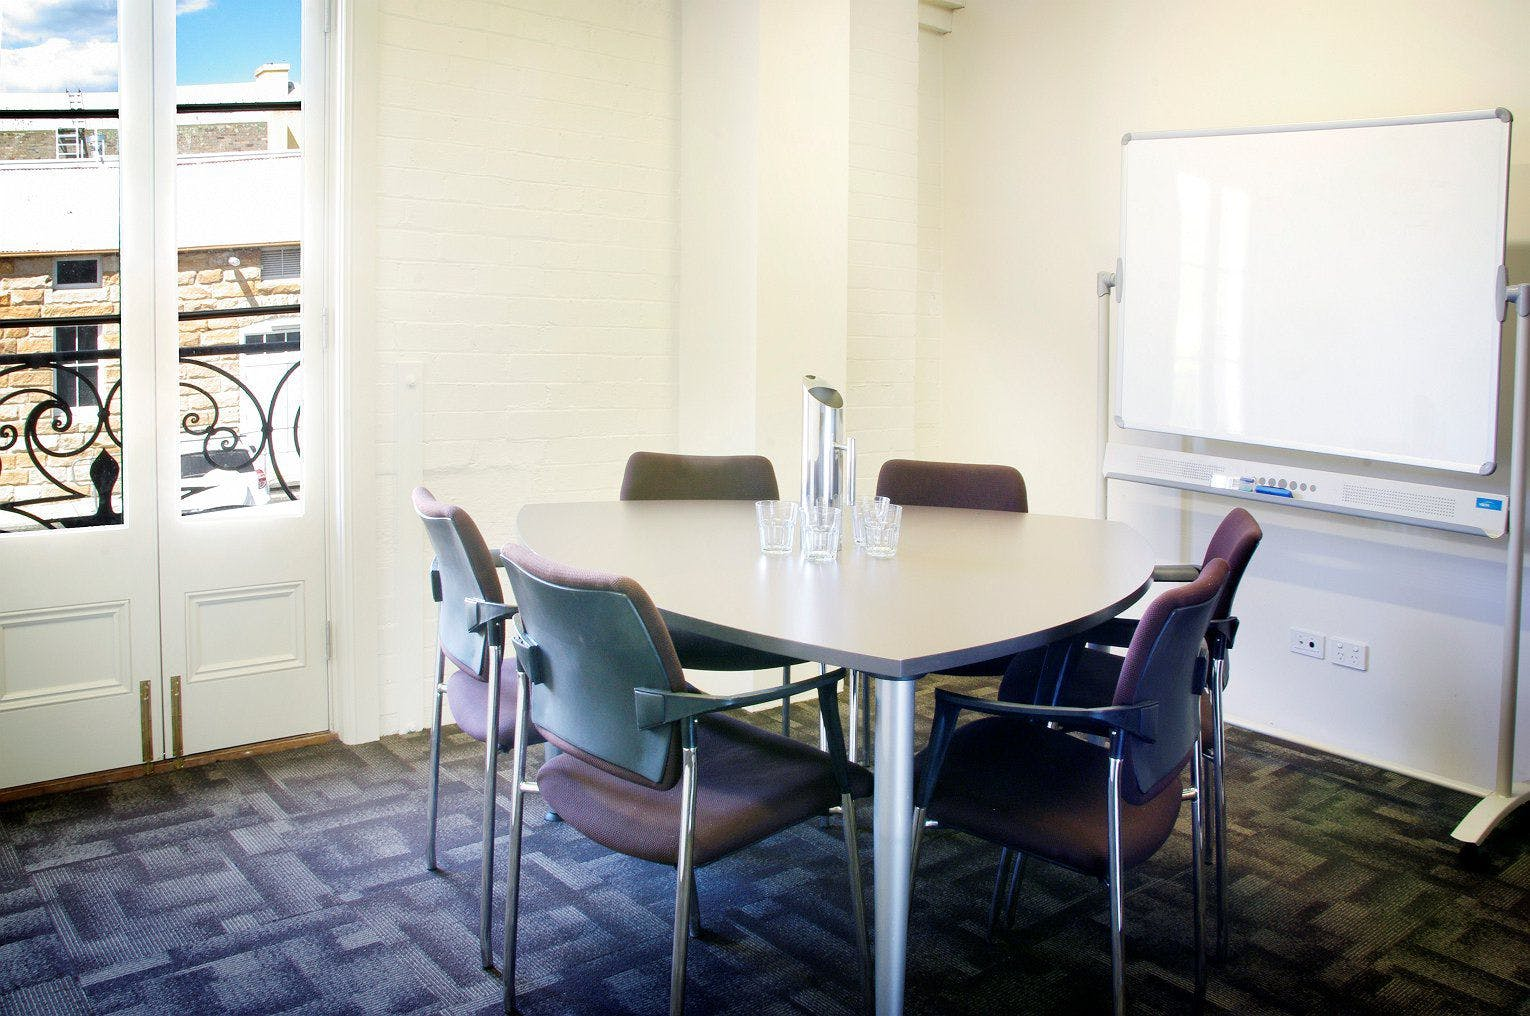 Meeting room at Regal Professional Centre, image 1